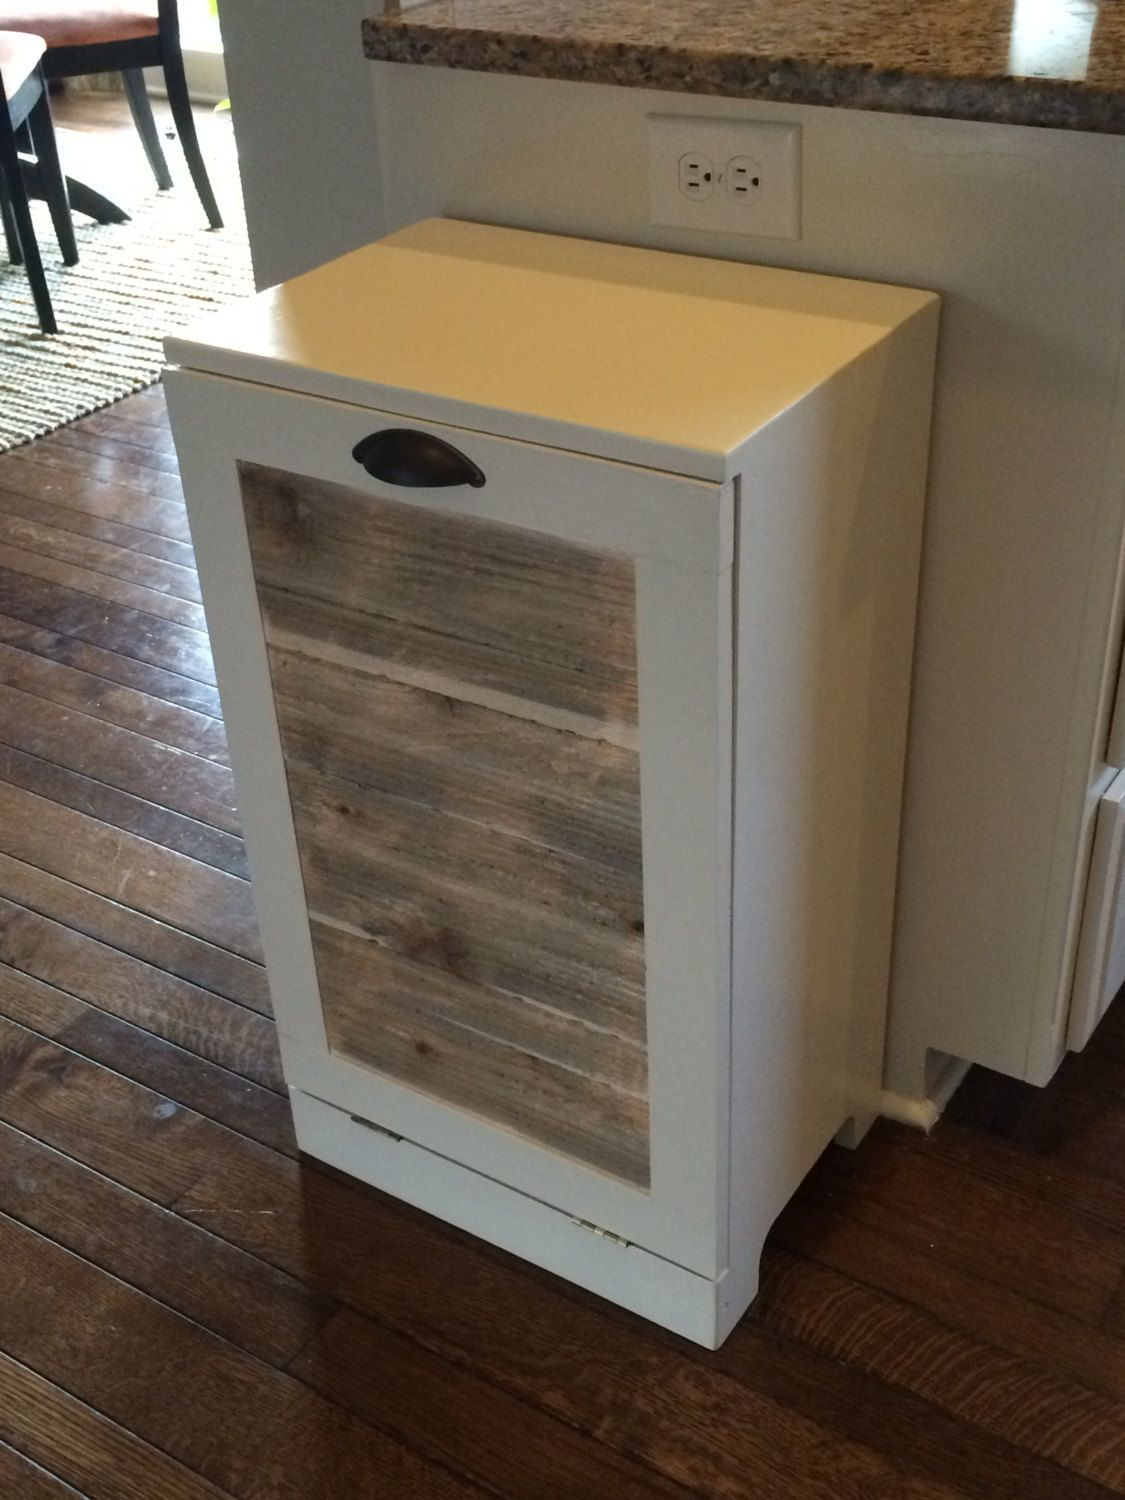 White tilt out clothes storage basket bin bathroom drawer ebay - Find This Pin And More On Trash Recycling Bins Rustic Tilt Out